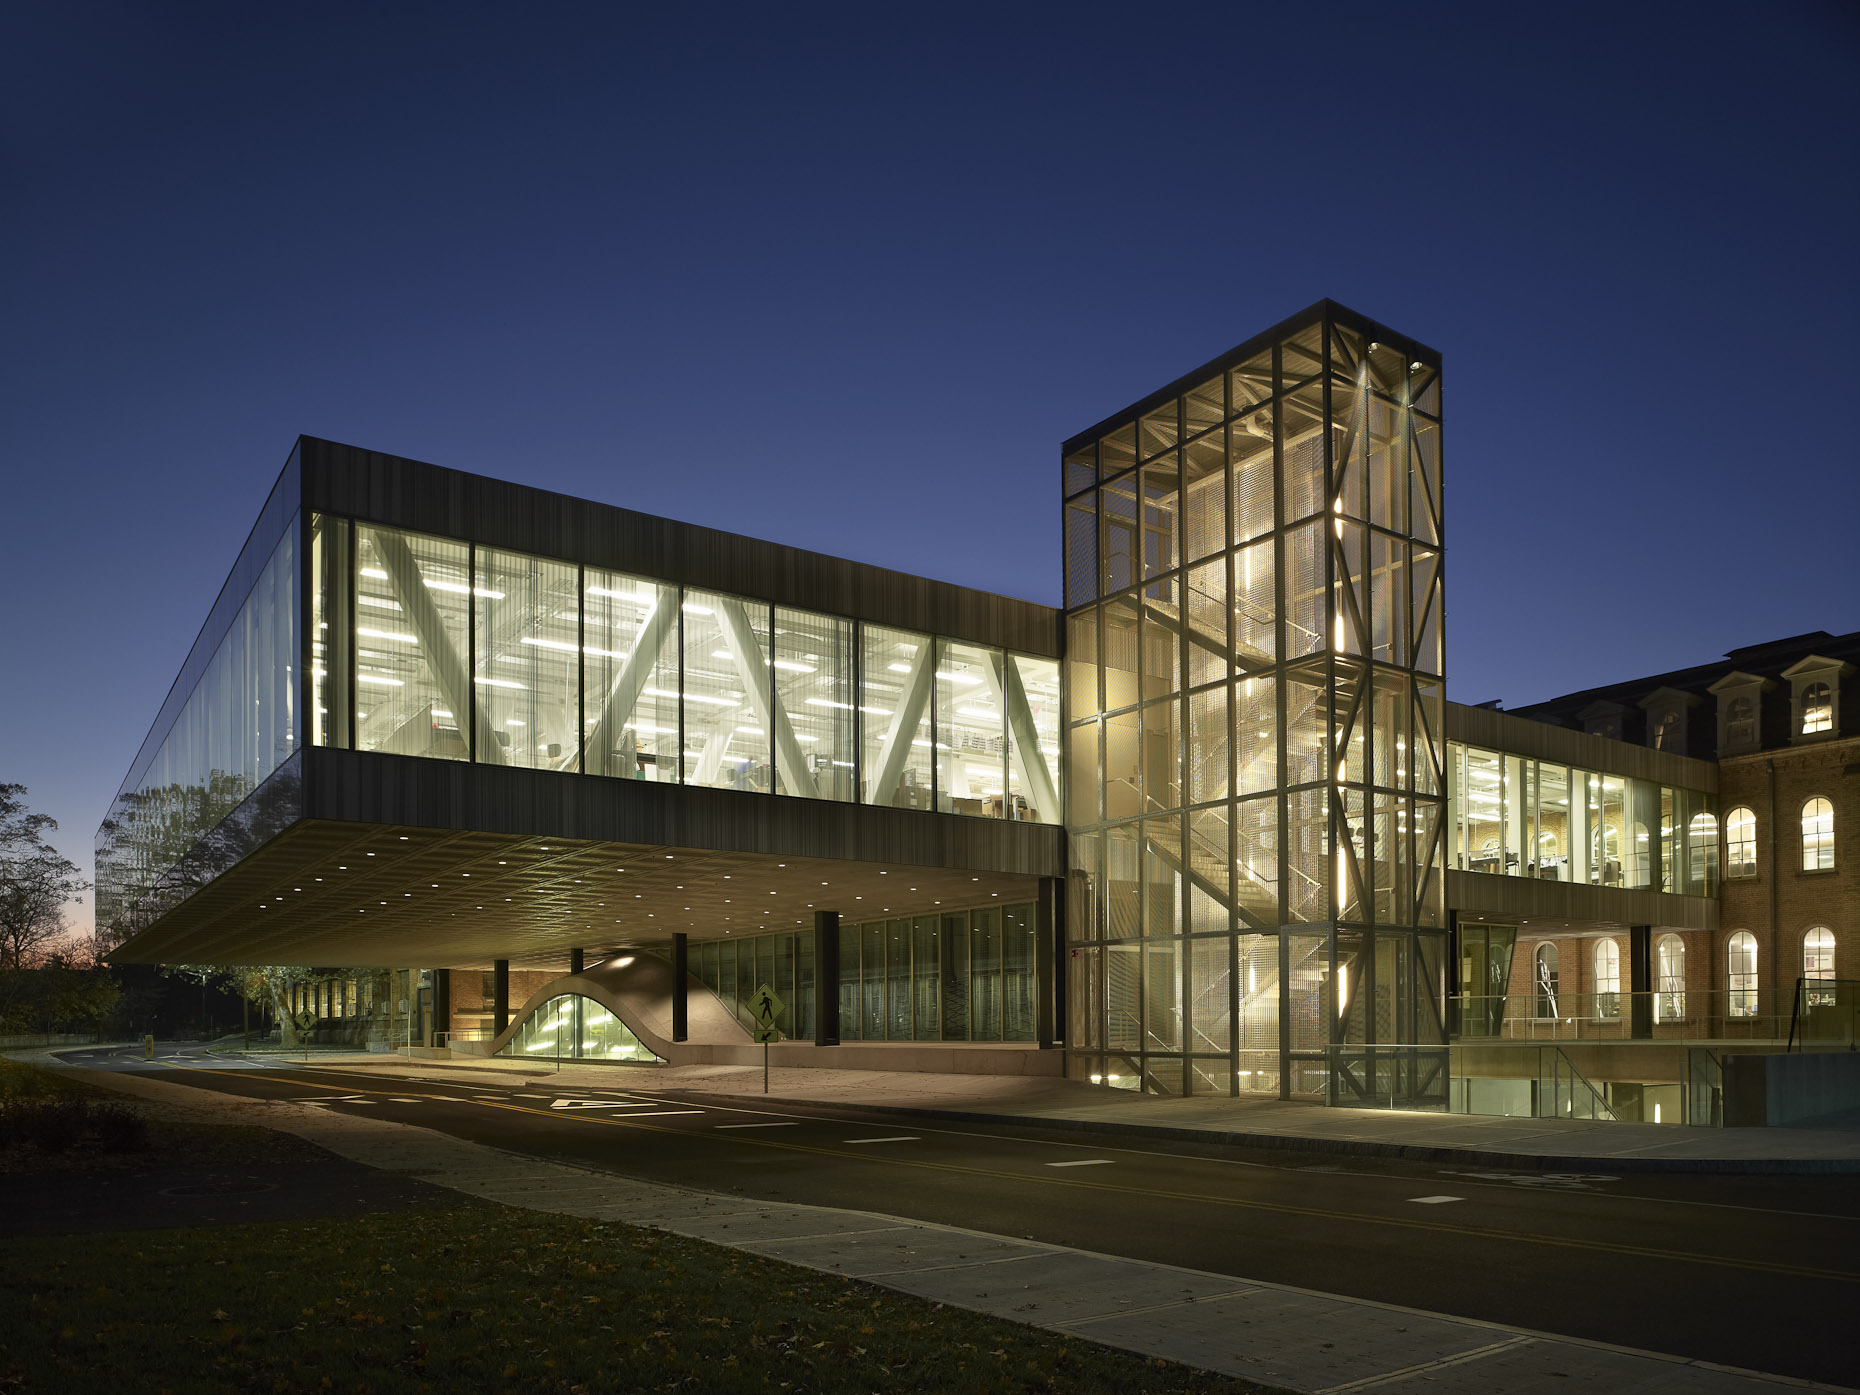 Milstein Hall at Cornell University by OMA Photographed by Brad Feinknopf based in Columbus, Ohio